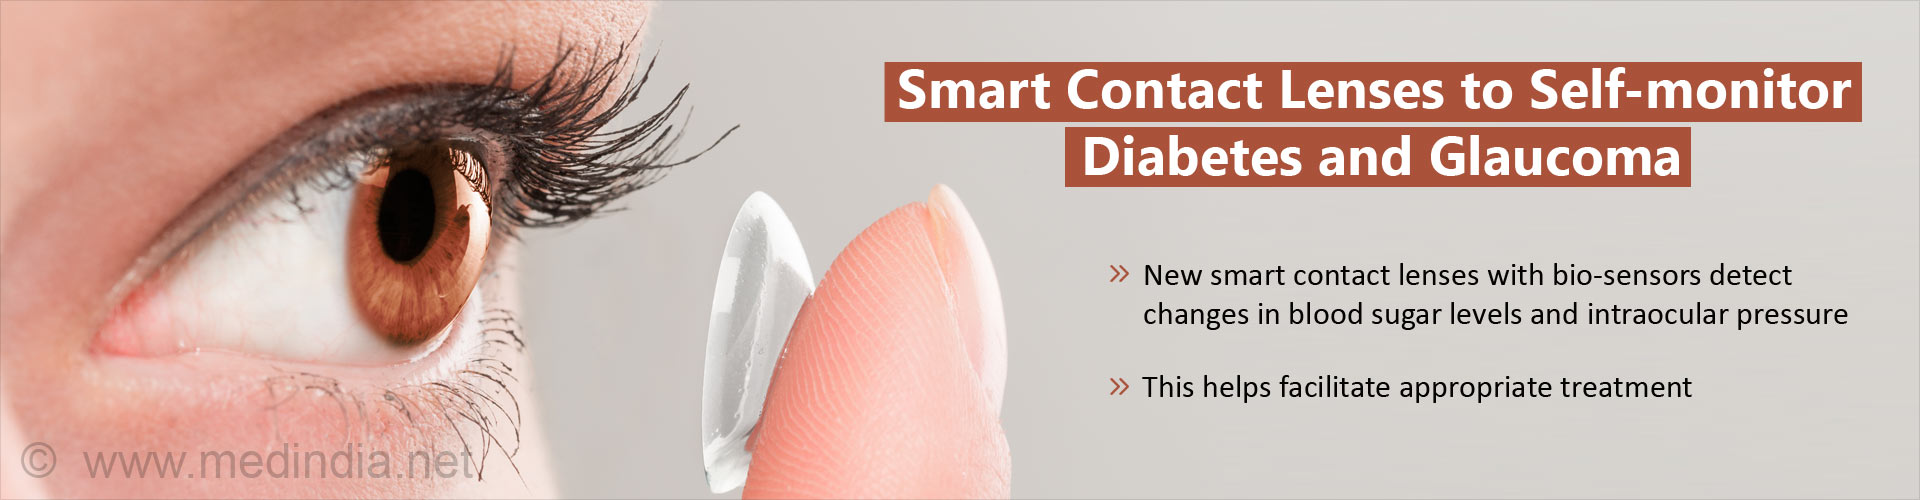 Smart contact lenses to self-monitor diabetes and glaucoma